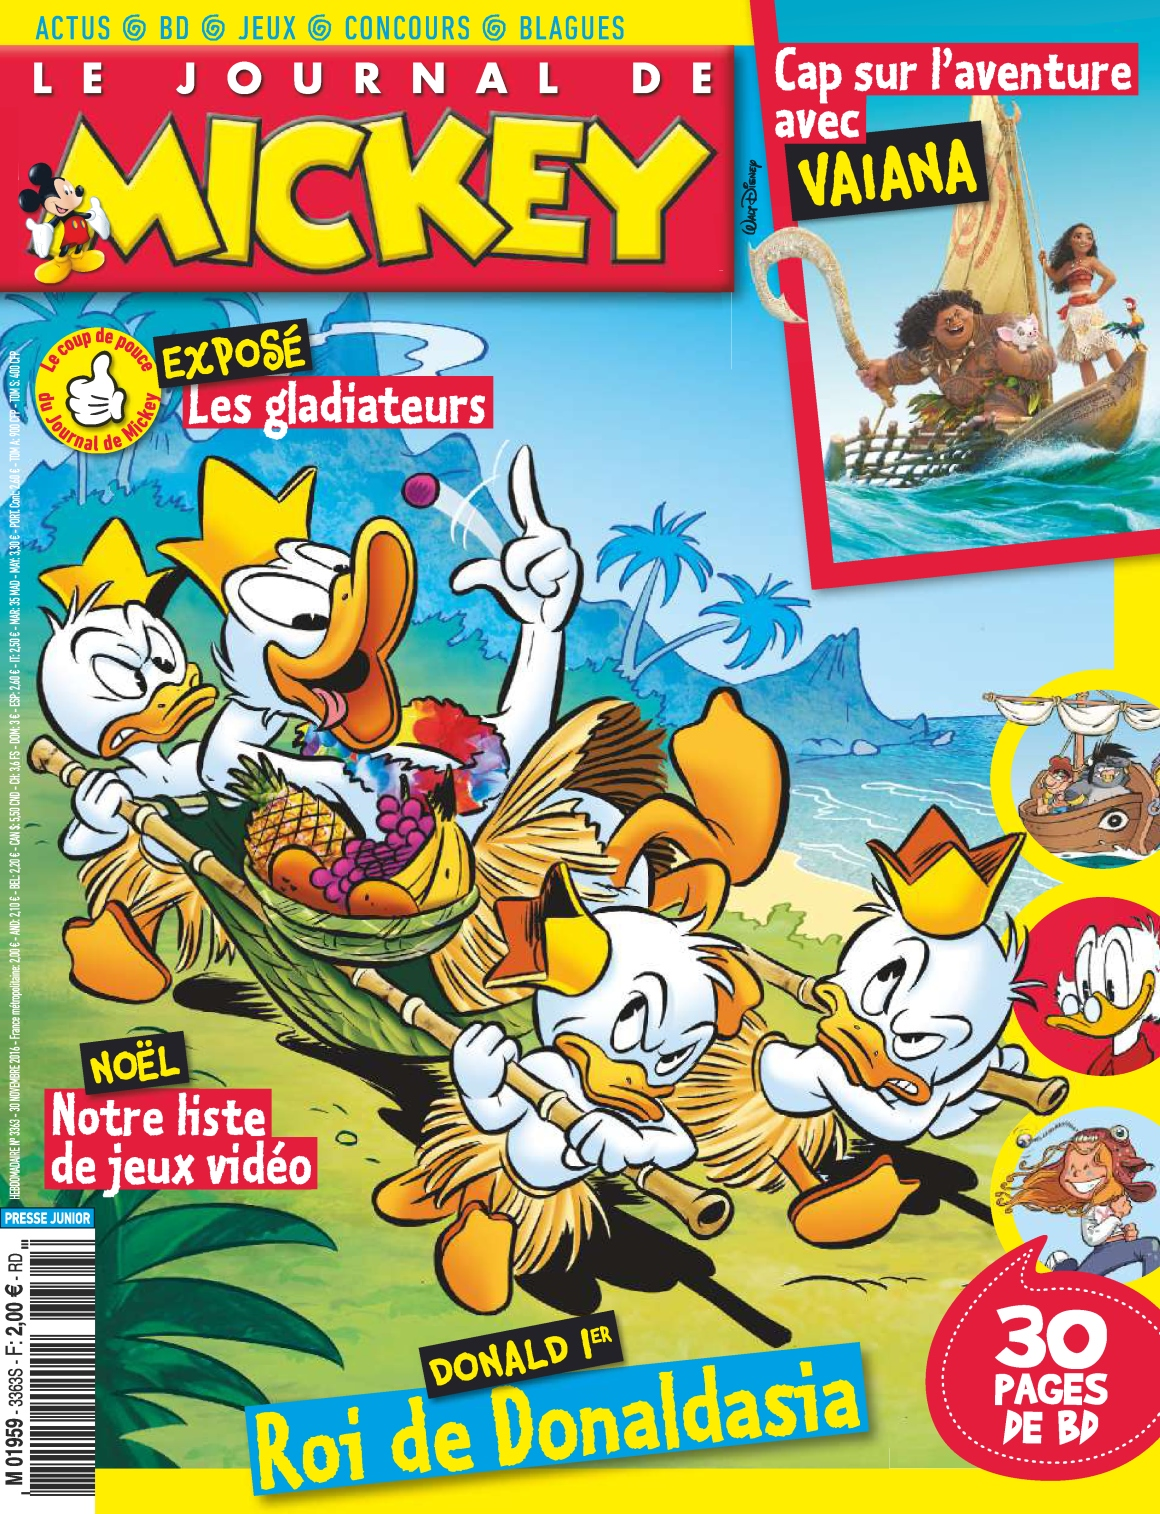 le journal de mickey n 3363 30 novembre 2016 telecharger livres bd comics mangas magazines. Black Bedroom Furniture Sets. Home Design Ideas